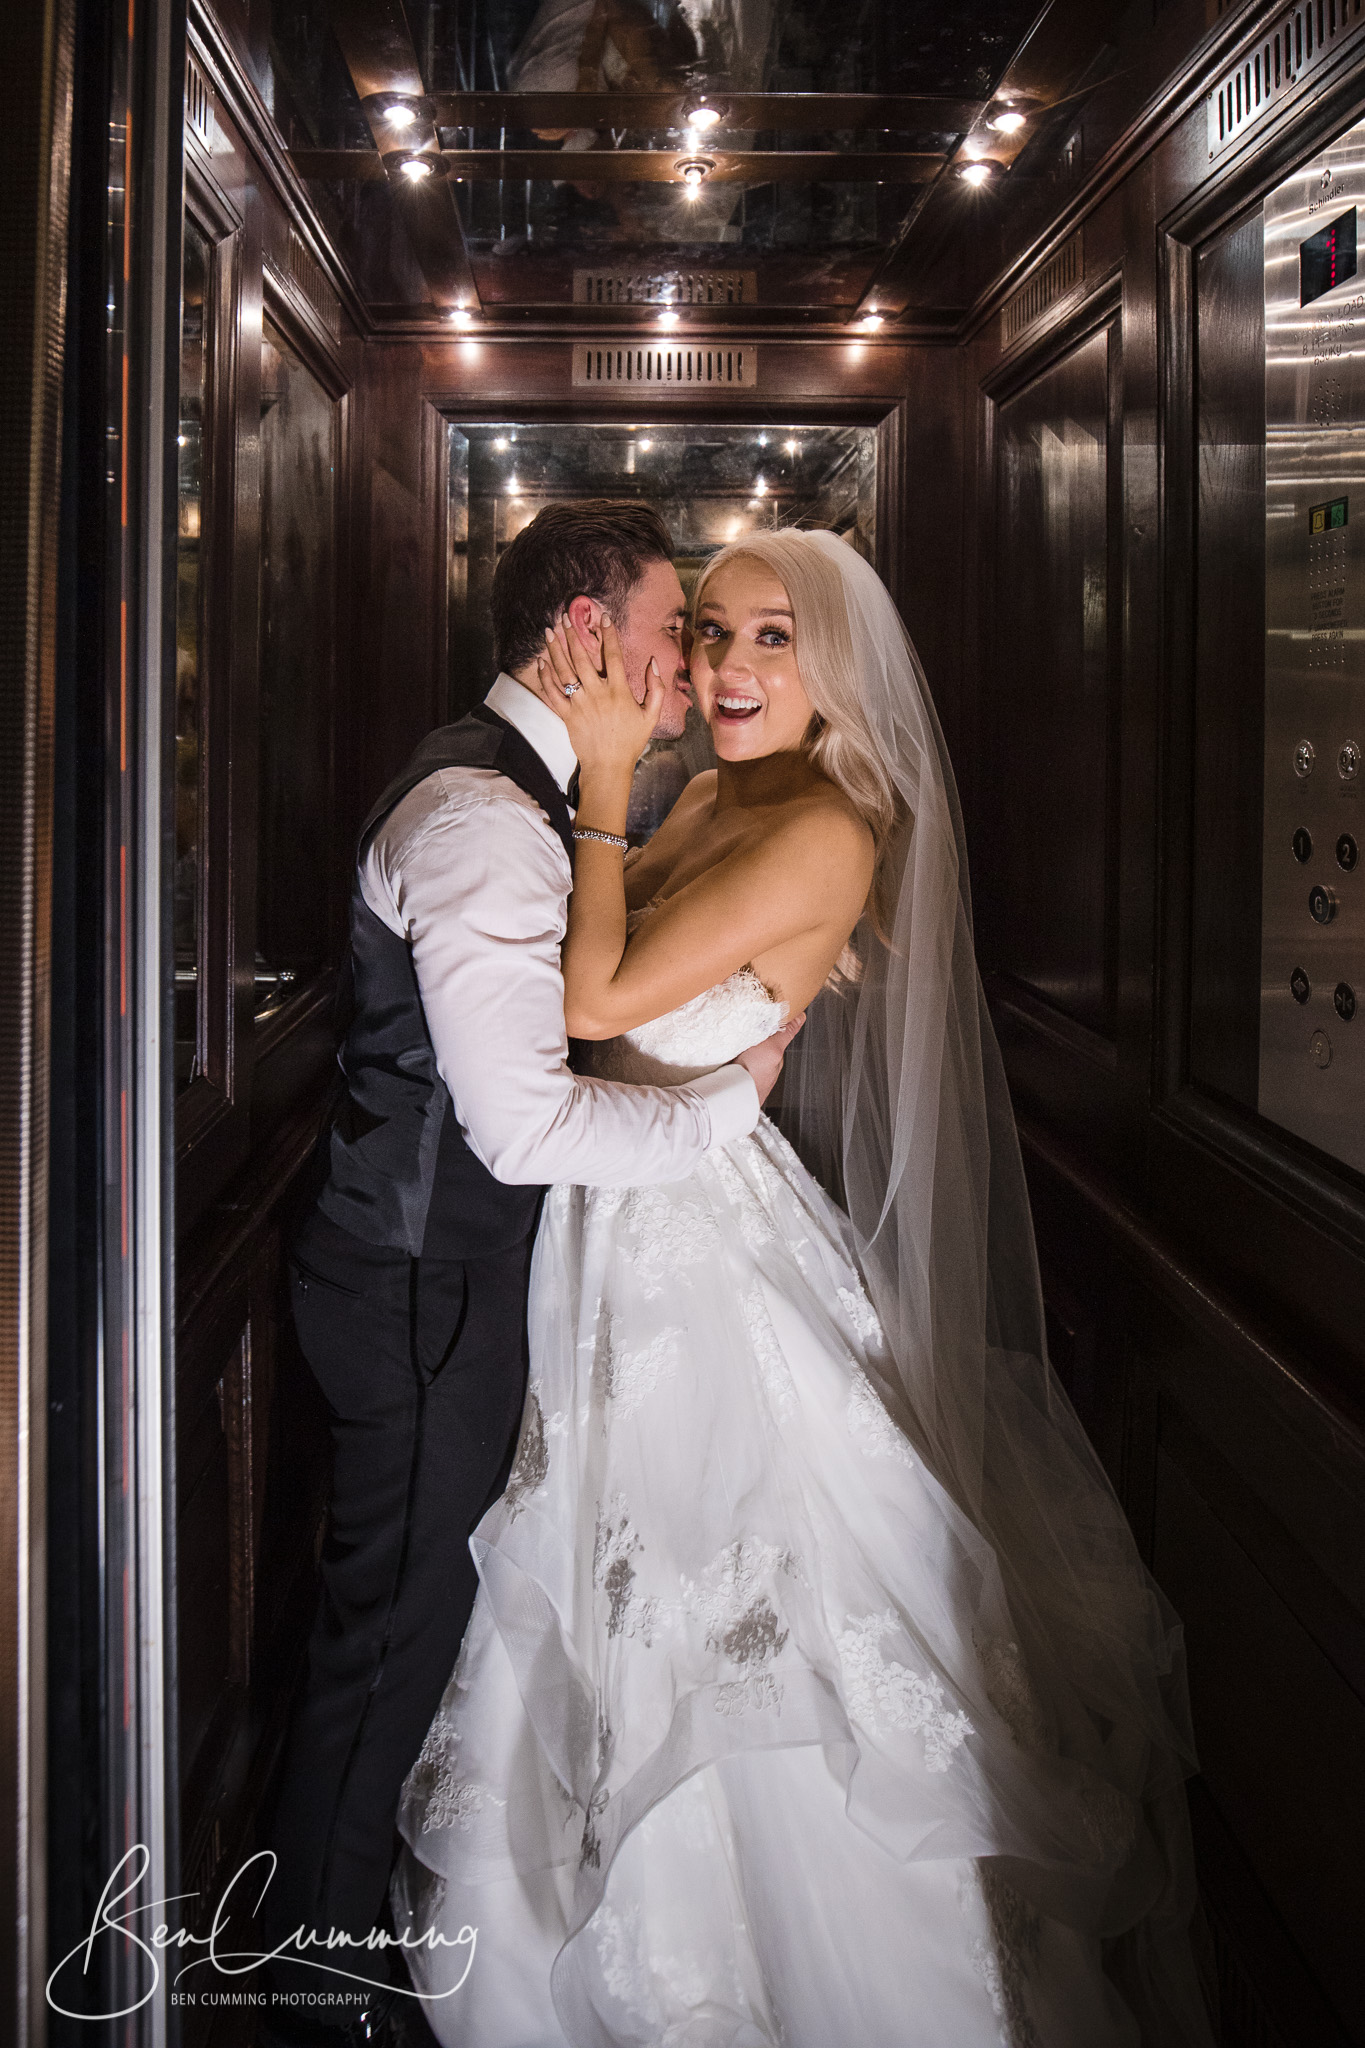 The bride and groom in a lift at Oulton Hall